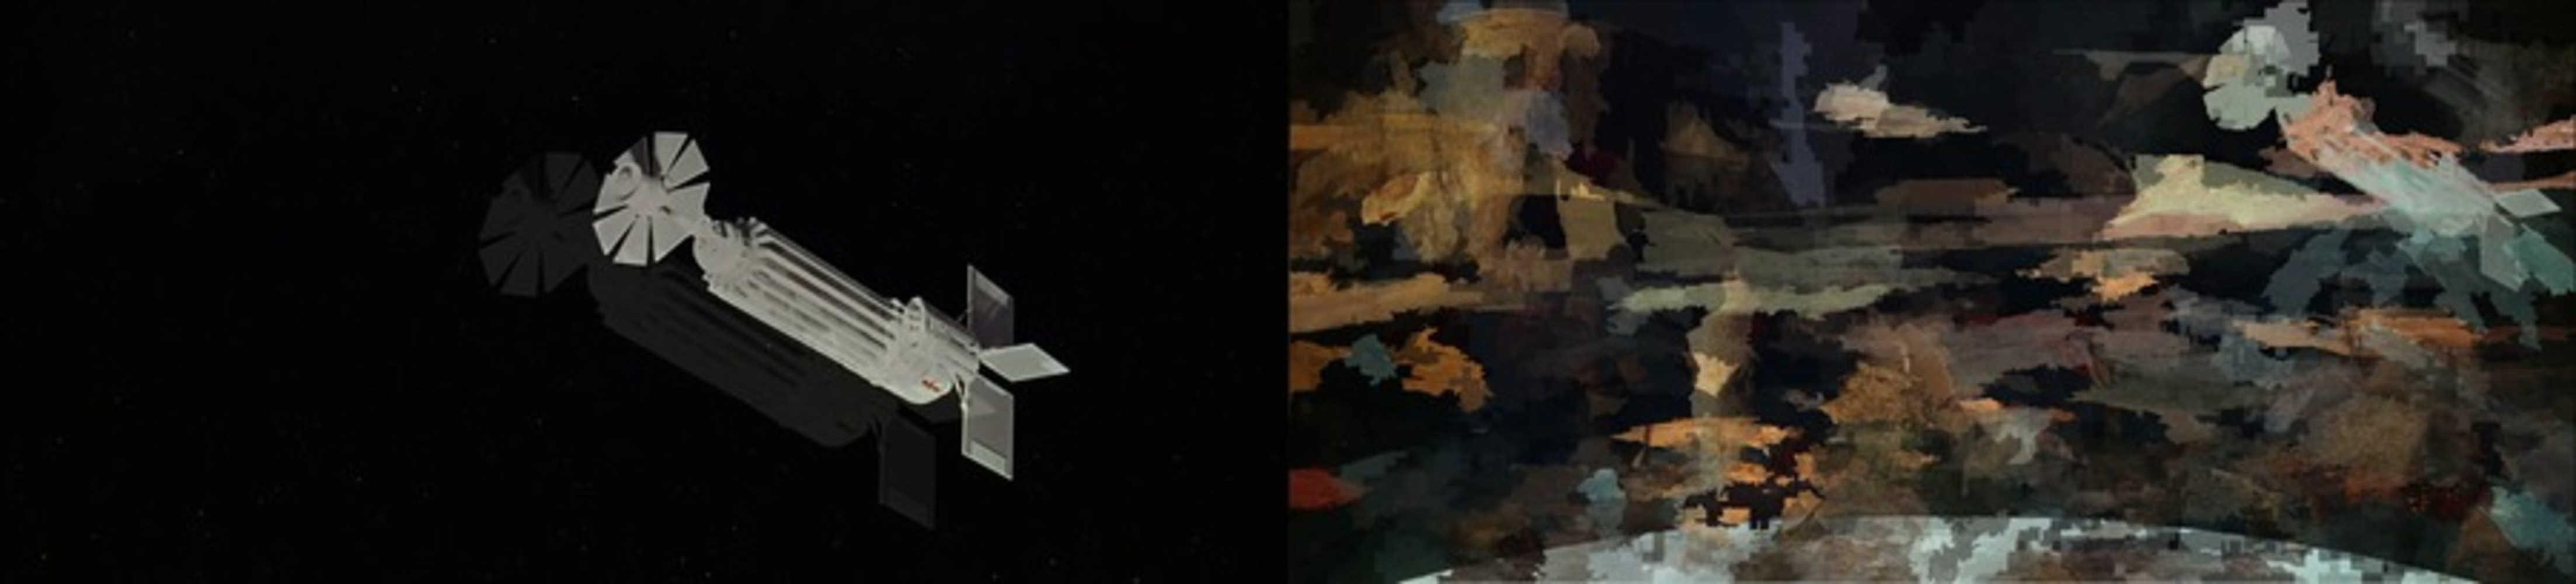 The image is clearly divided down the middle, creating a left side and a right side. Left side: space ship in an empty black void. Right side: more restrained splotches of color that do not clearly represent specific scenes, but where warm colors of landscape and cool colors of space can be differentiated. The outline of a space-ship (same as left) and planet's surface, as seen from space, are intelligible.